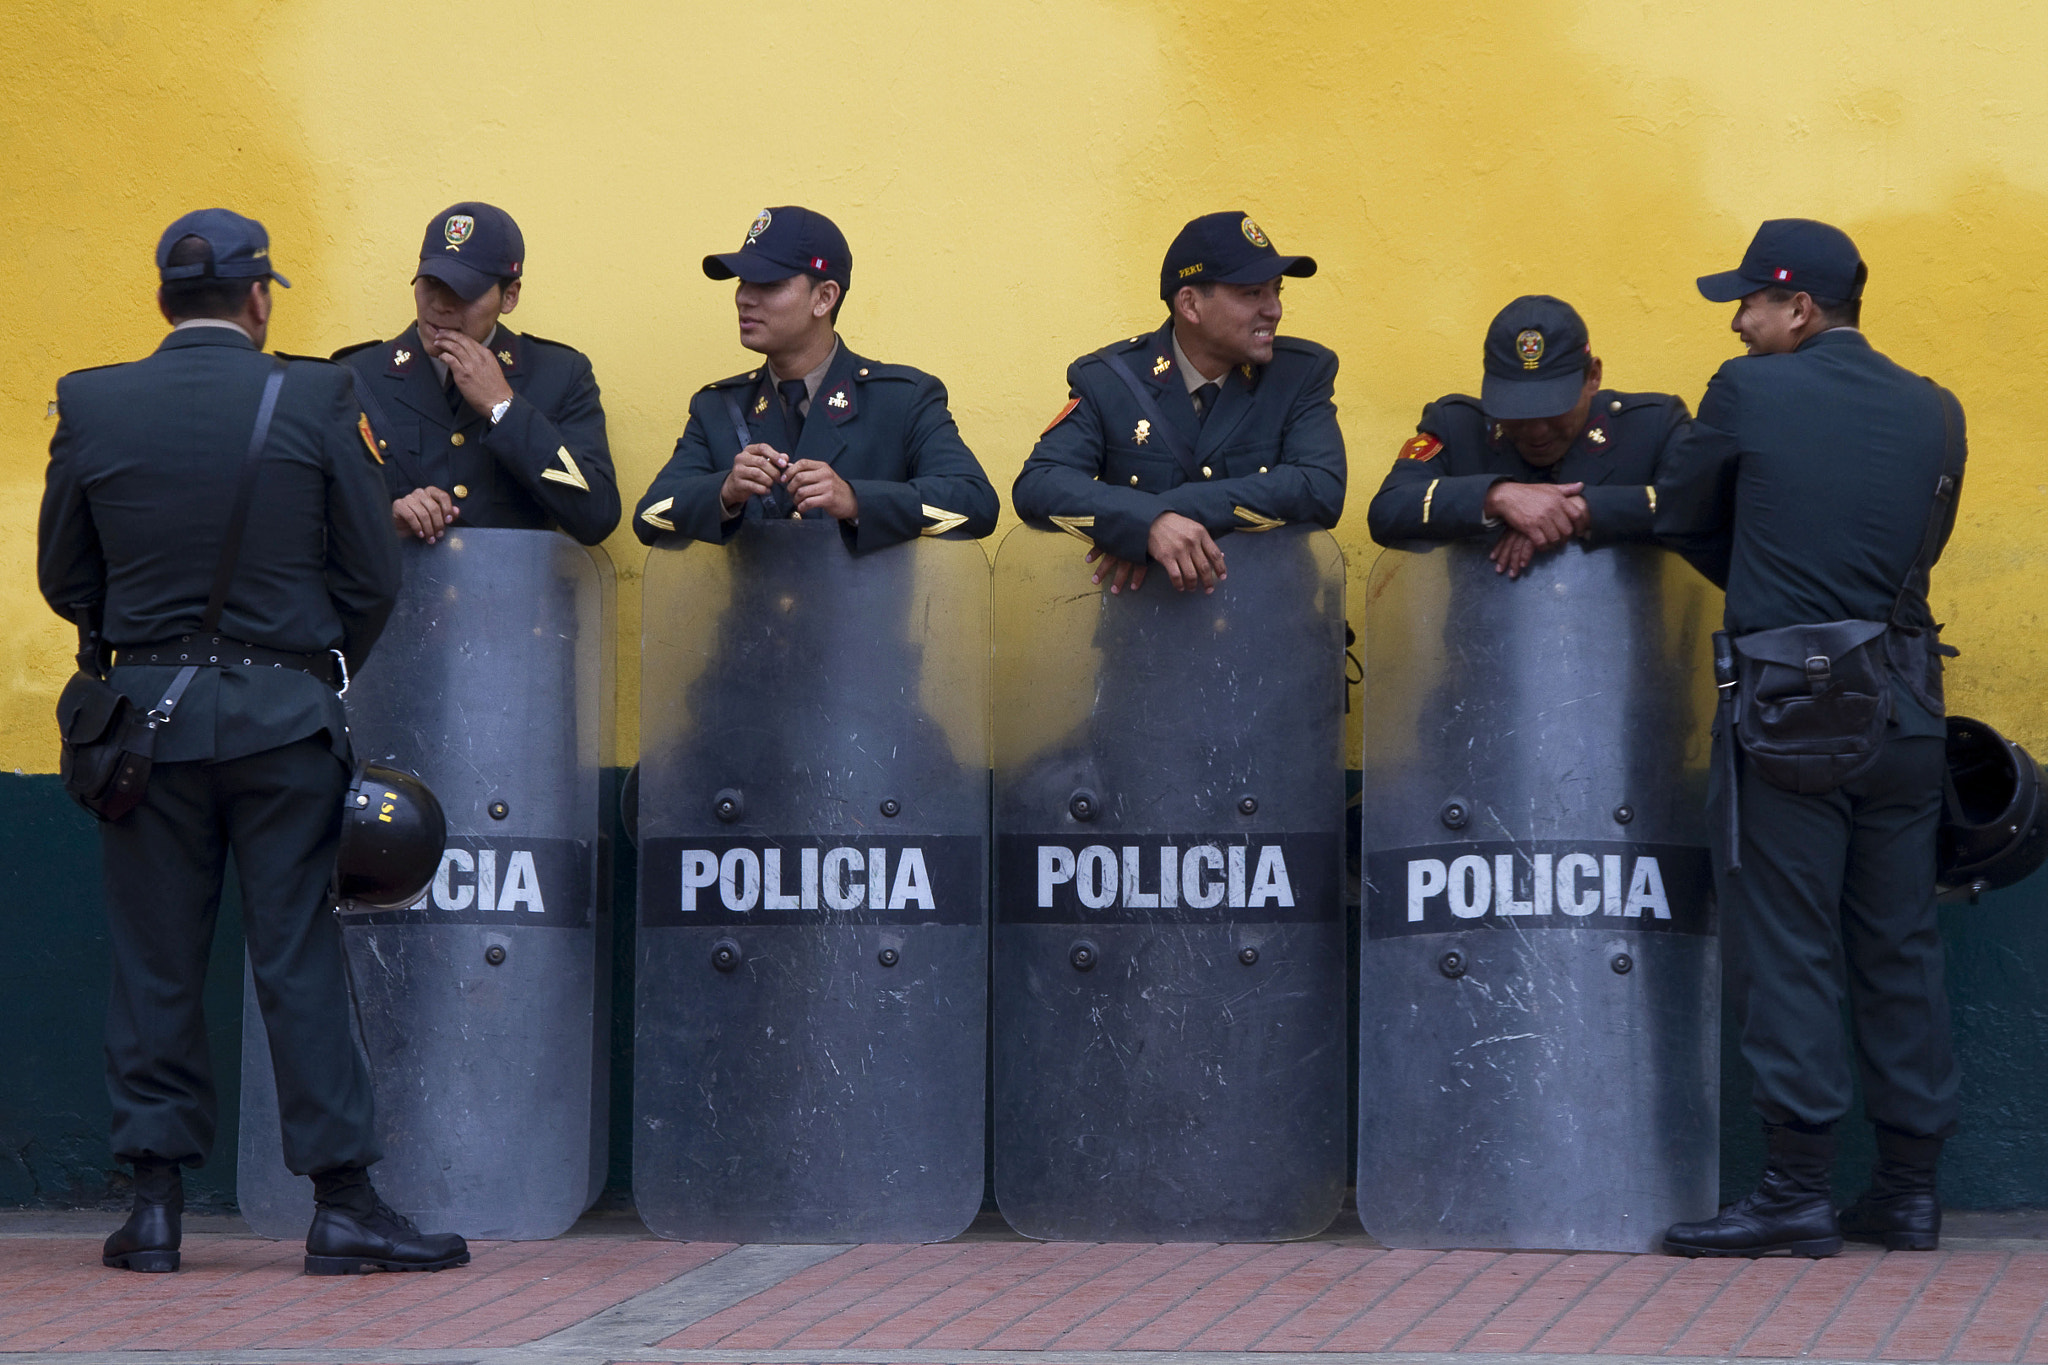 Photograph Policia by Mark Cullen on 500px